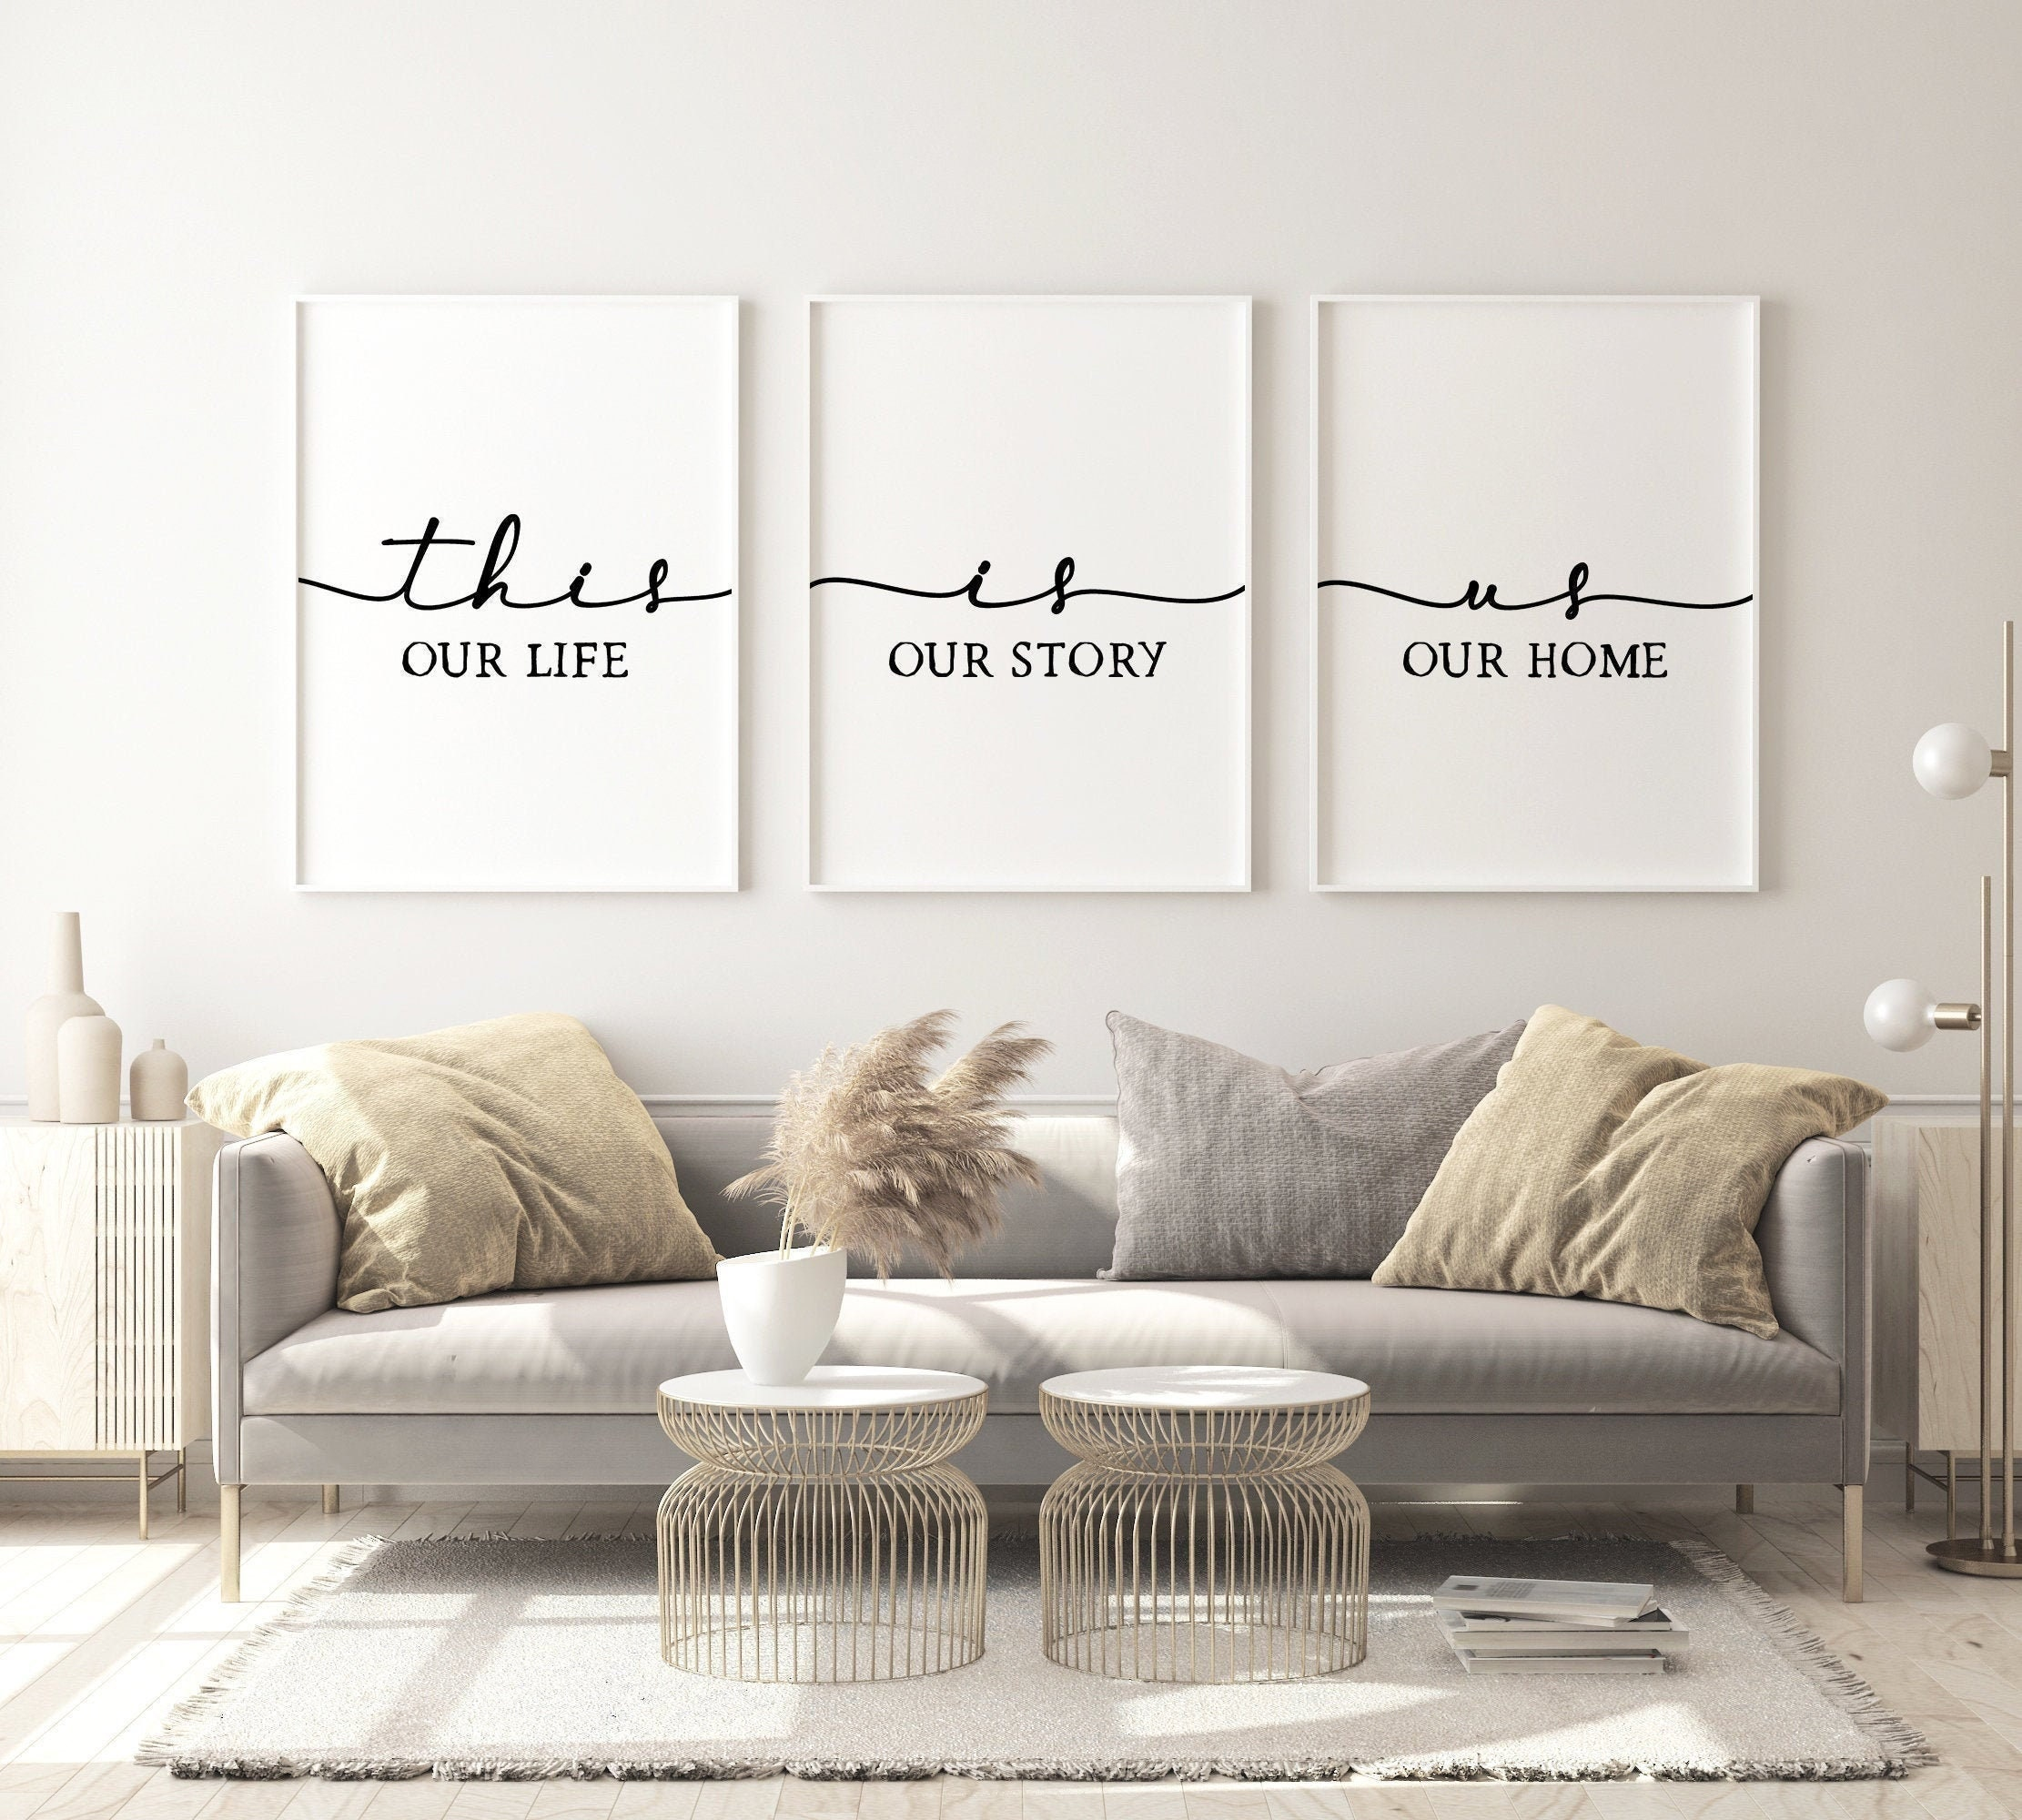 3 This Is Us,Our Life Our Story Our Home Printable,Living Room Wall Art,Home Decor Prints,Set Of 3 Prints,Minimalist Sign,Scandinavian Art